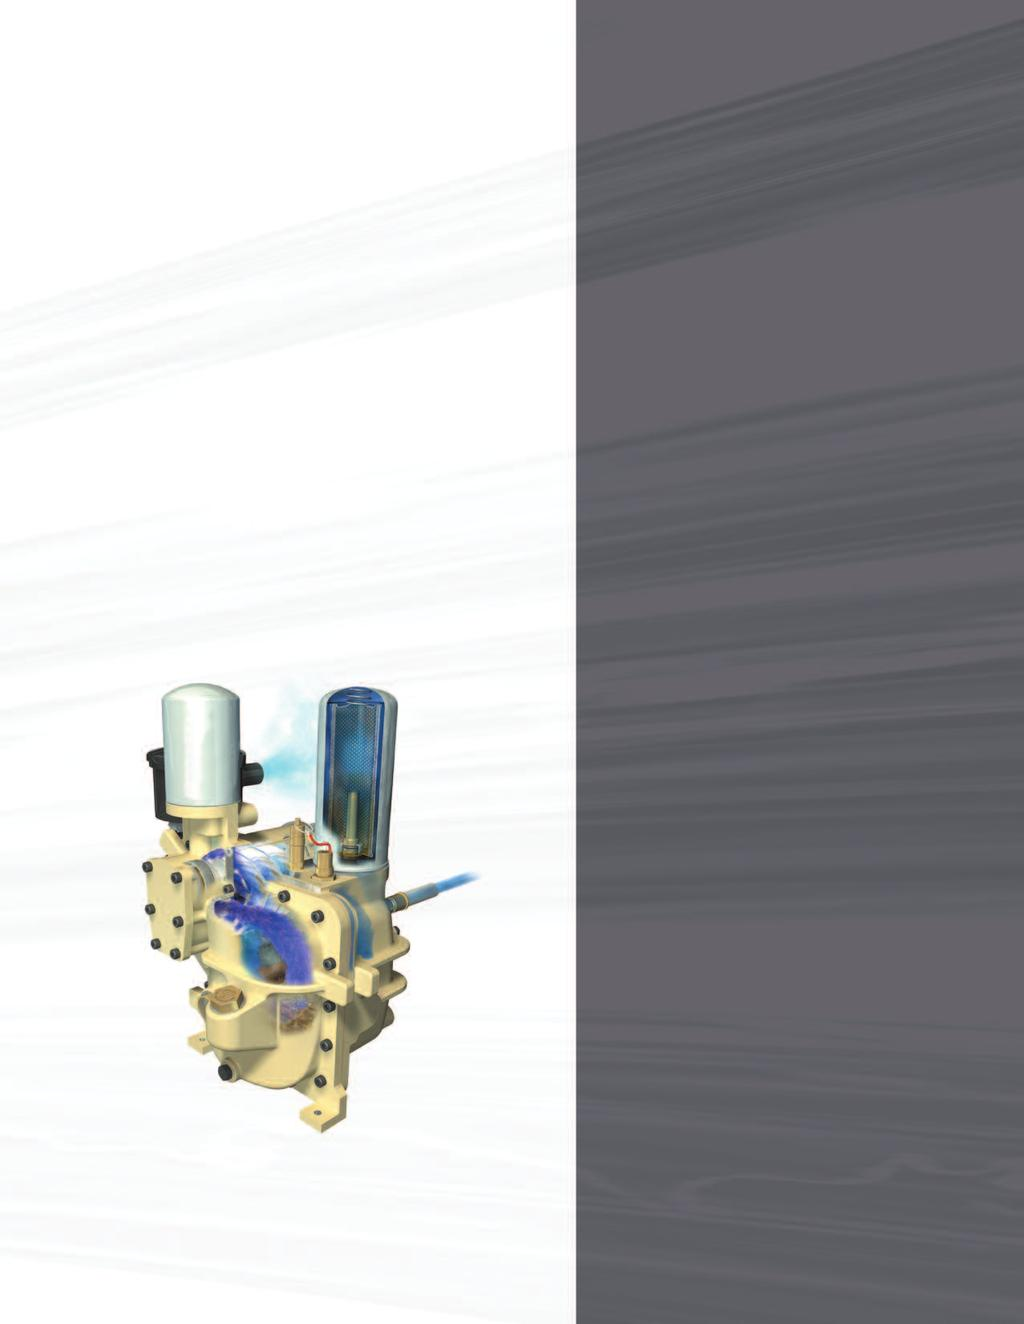 Innovation High-efficiency Integrated Compression Module To provide maximum